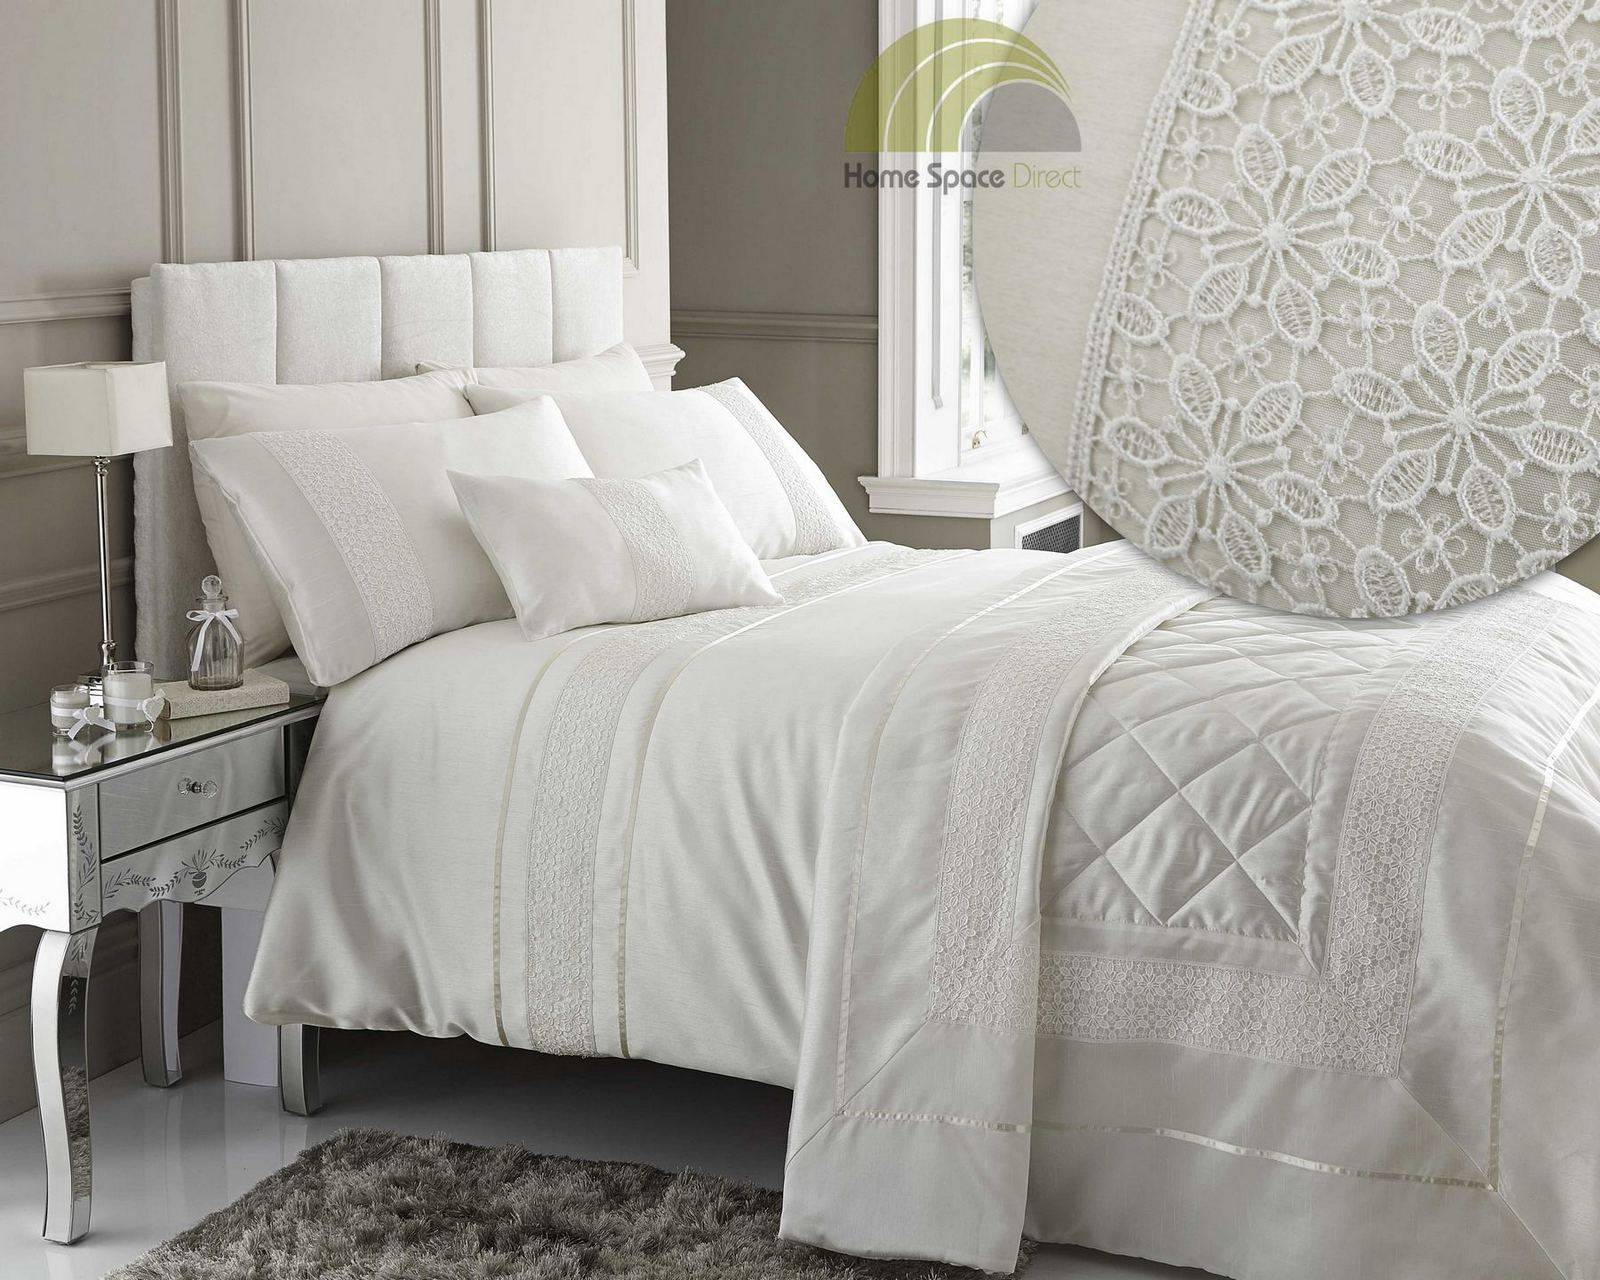 Modern quilt bedding - Embroidered Or Laced Quilt Duvet Cover Bedding Bed